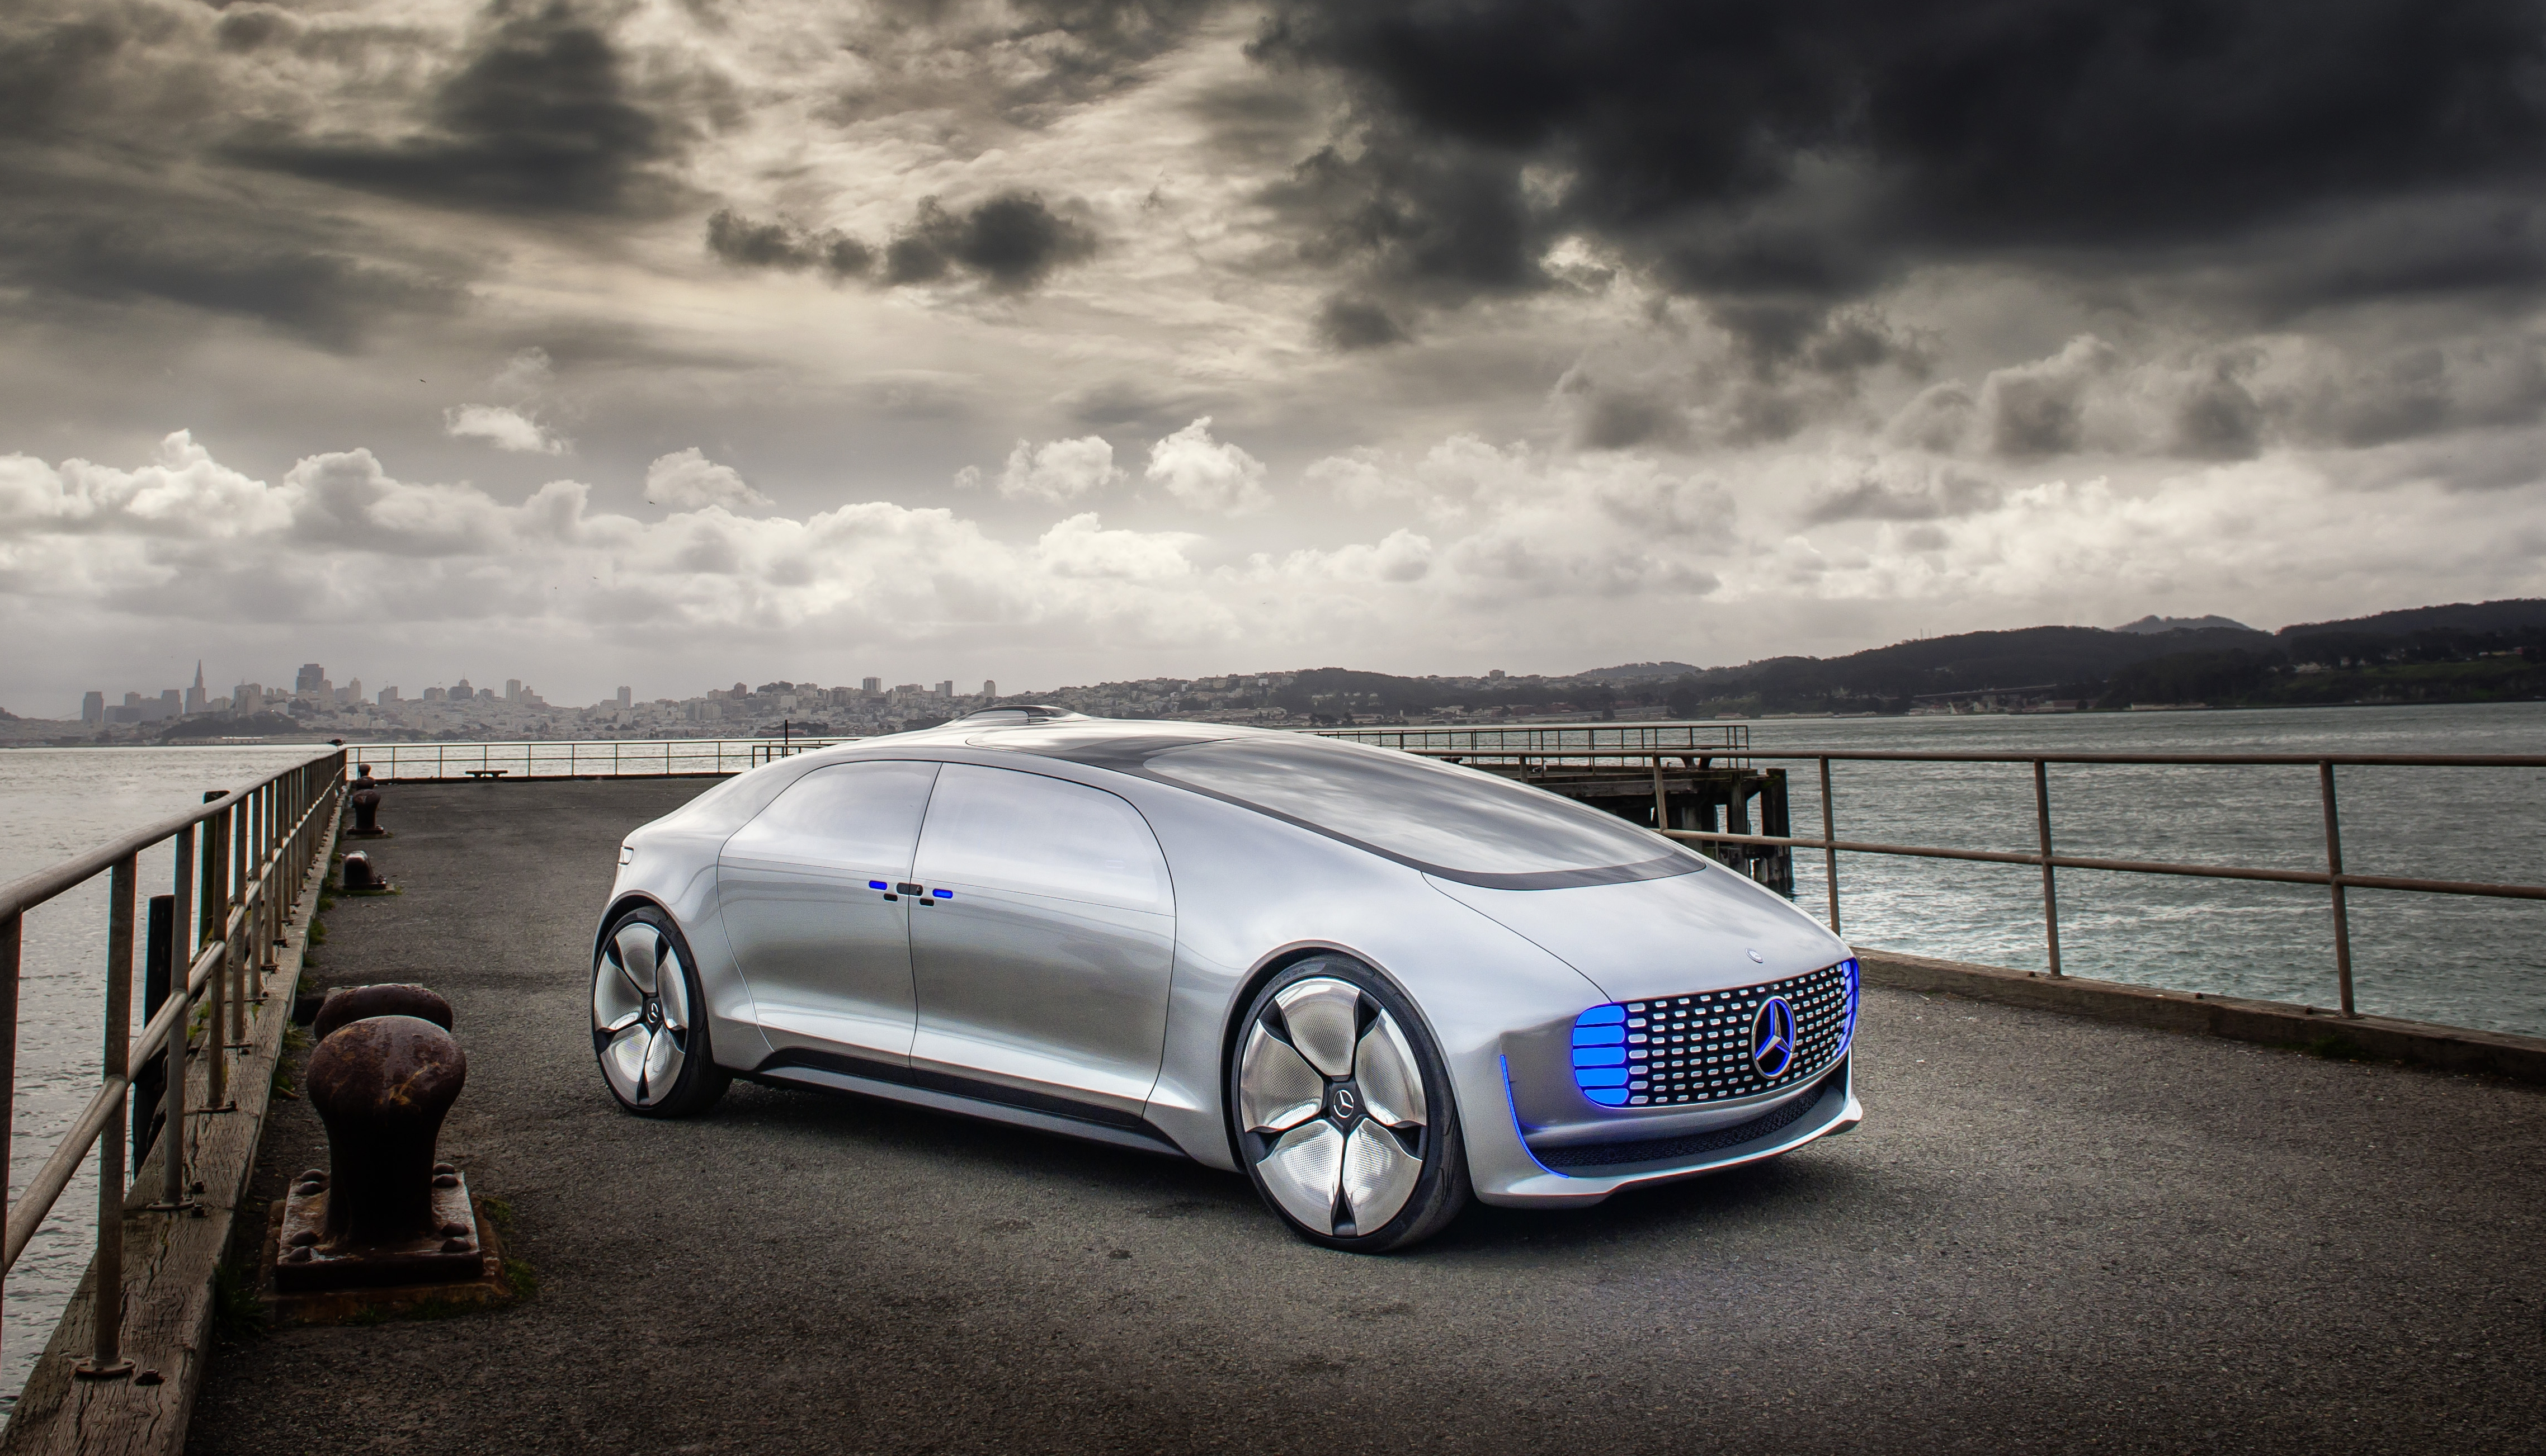 Mercedes F 015 >> DRIVEN: Mercedes-Benz F 015 Luxury In Motion in SF Paul Tan - Image 322080